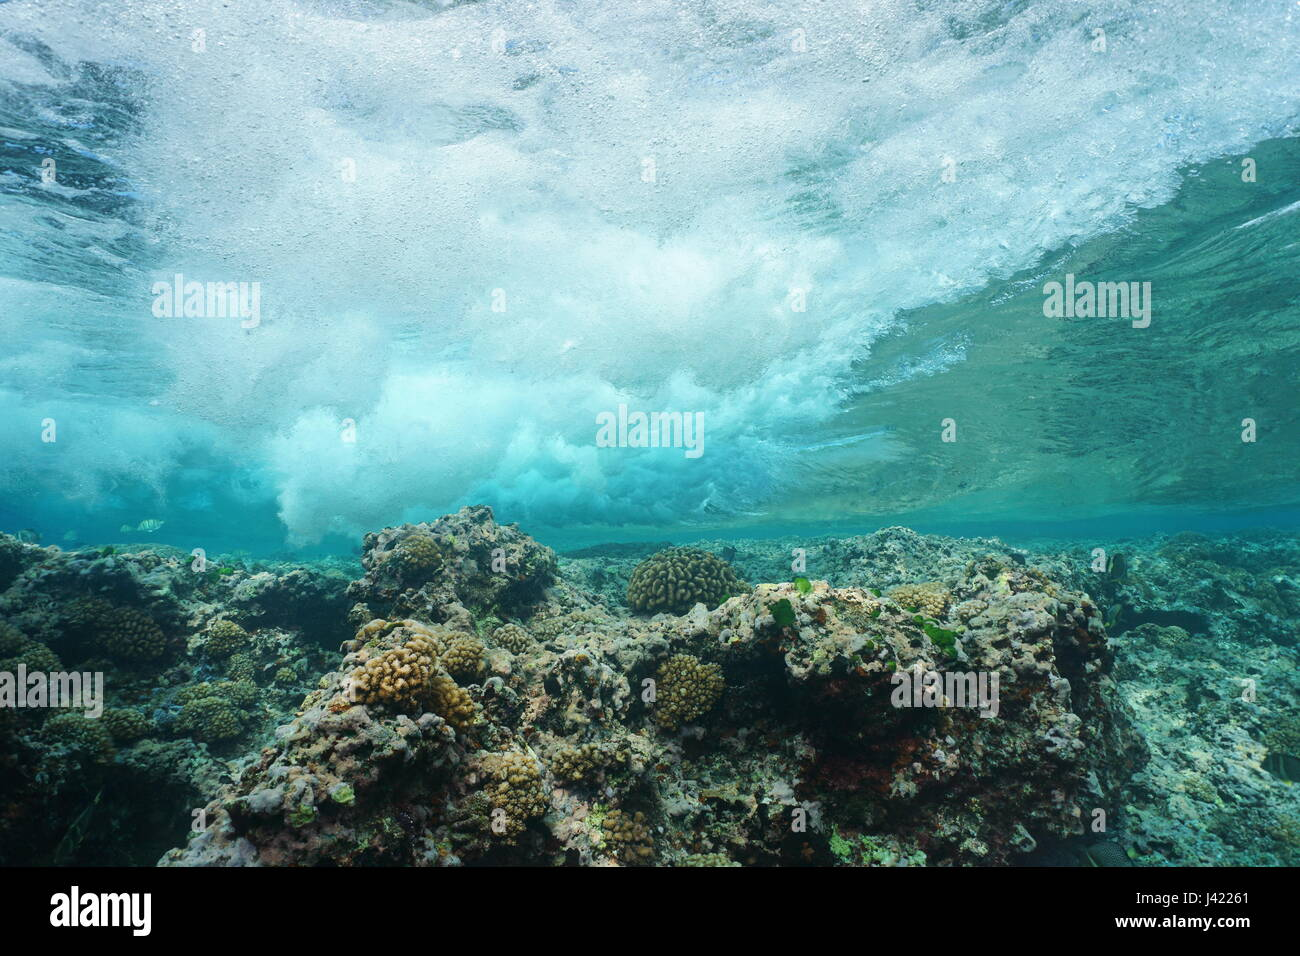 Wave breaking on the reef from underwater, Pacific ocean, Huahine, Society islands, French Polynesia - Stock Image